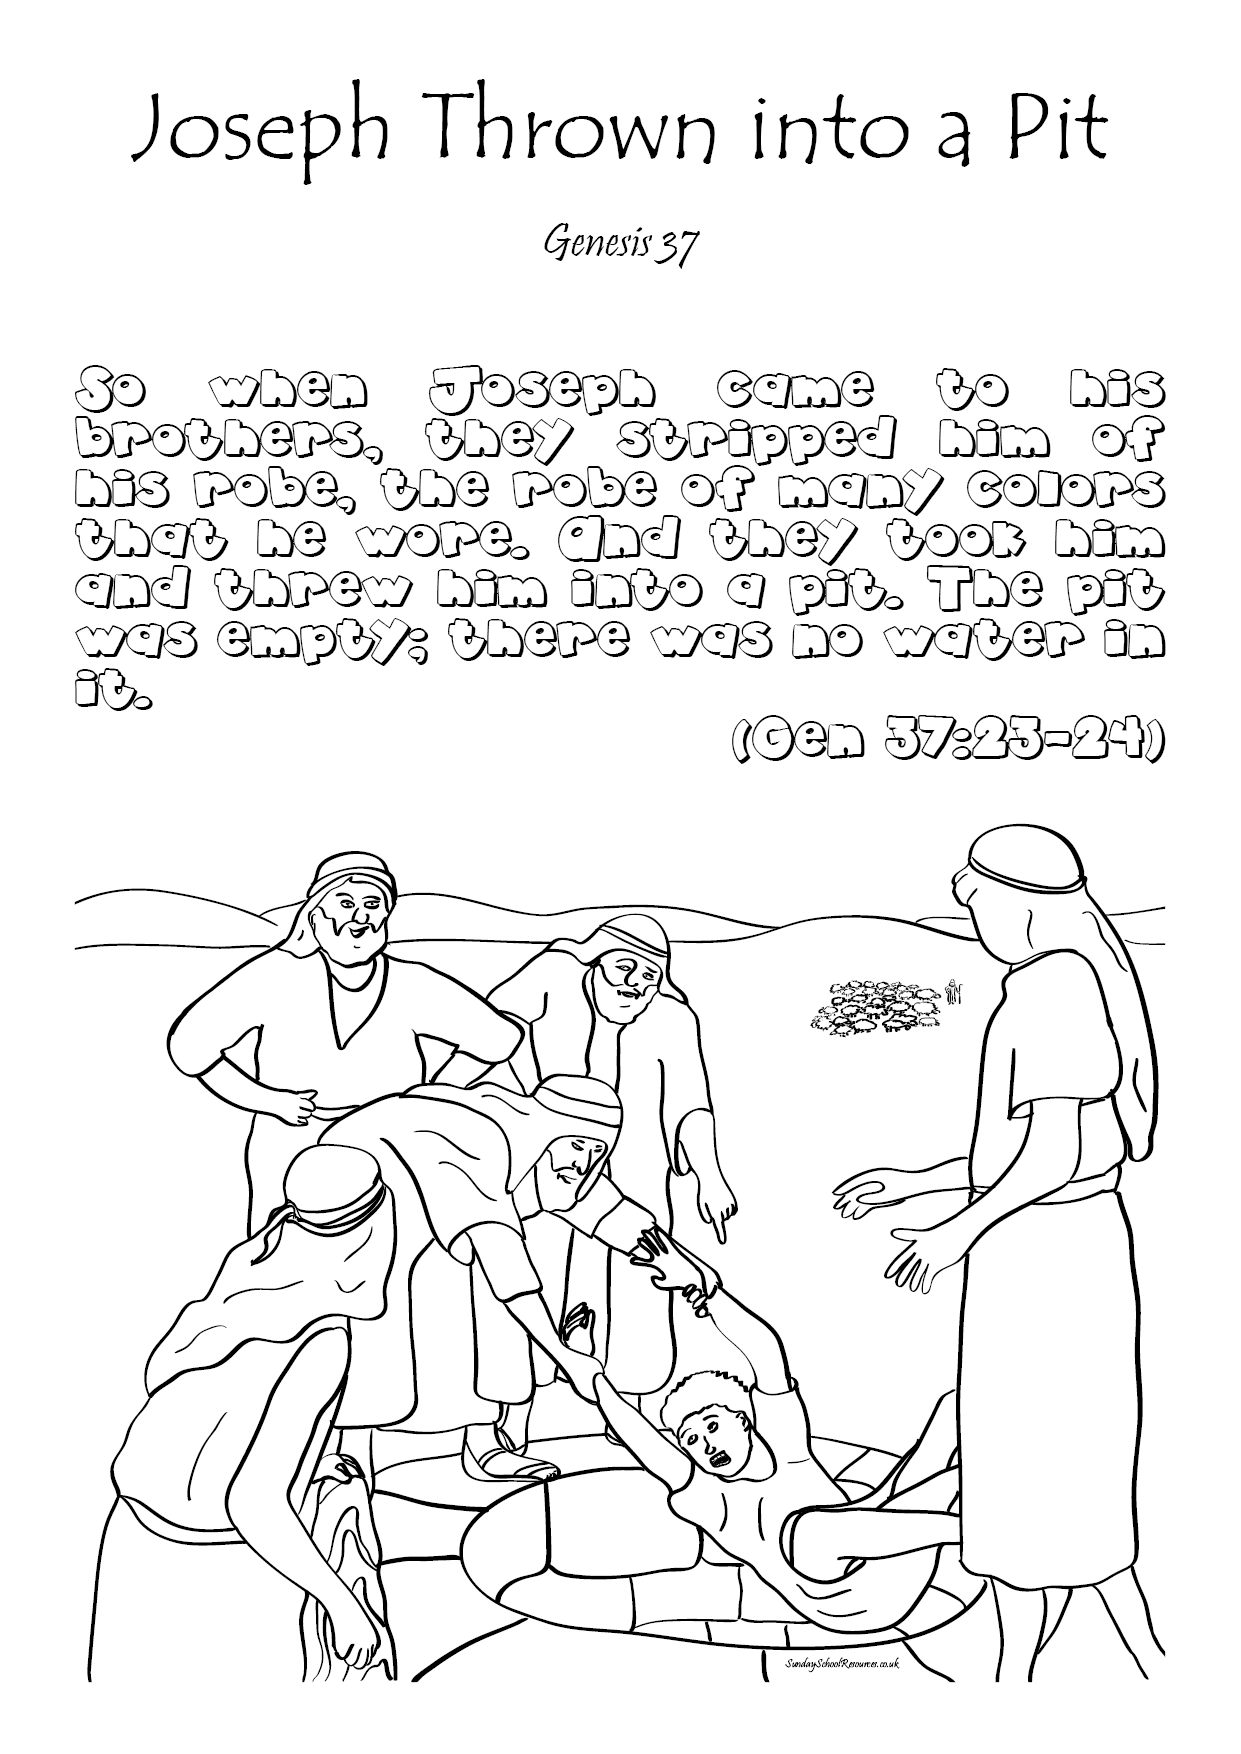 coloring bible story pictures for sunday school pin by dawn moses on sunday school jesus coloring pages sunday story pictures bible for coloring school